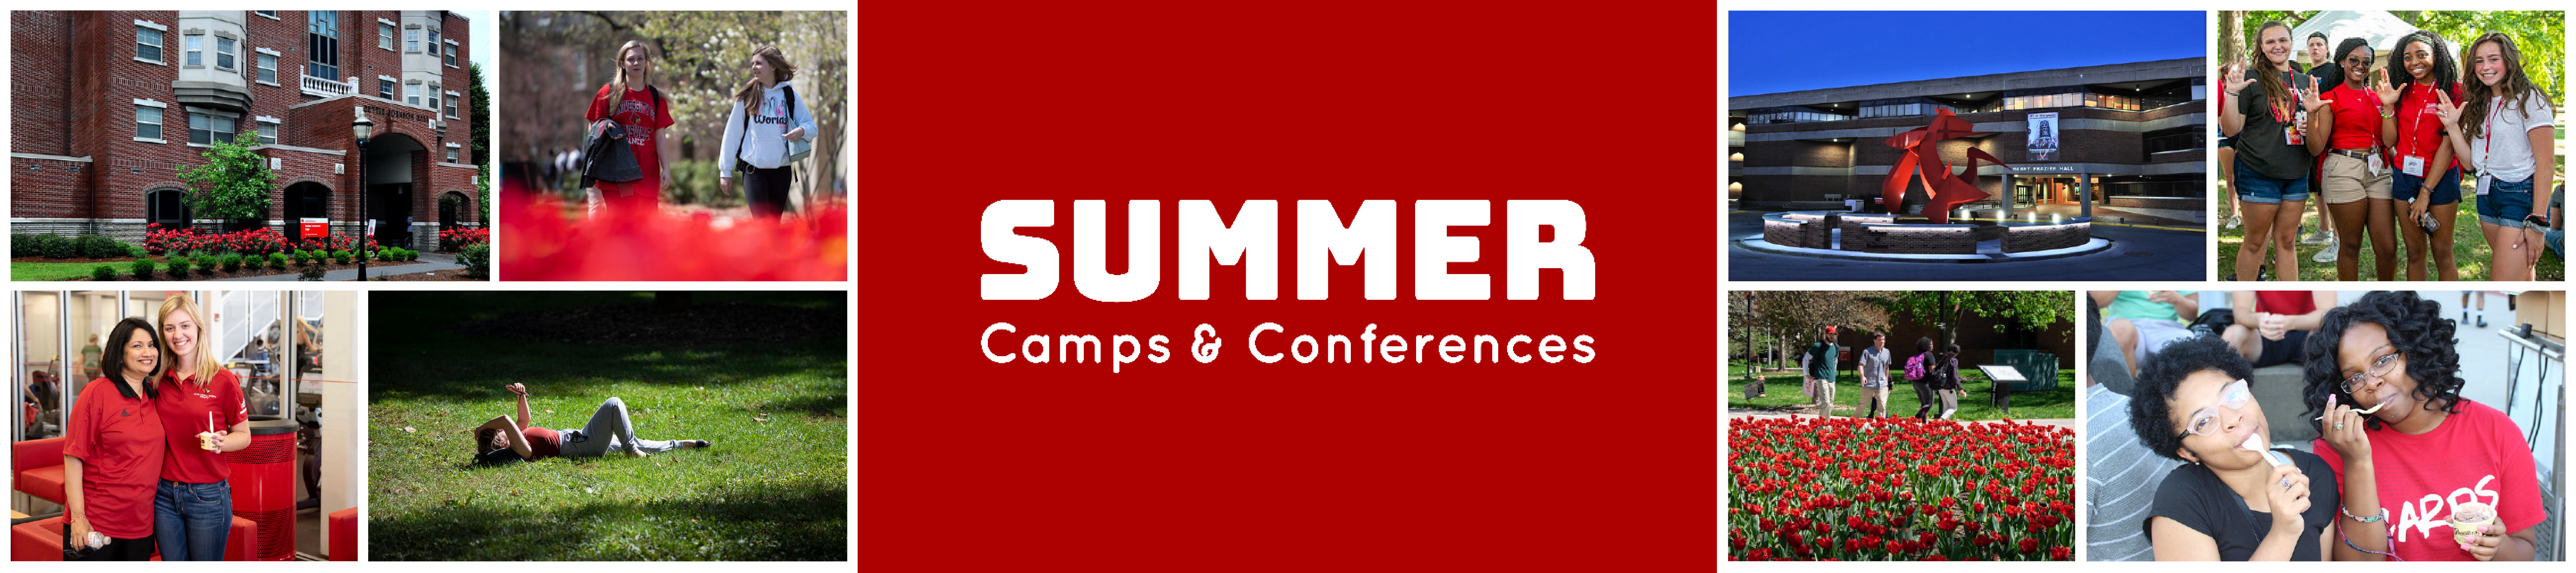 summer camps and conferences